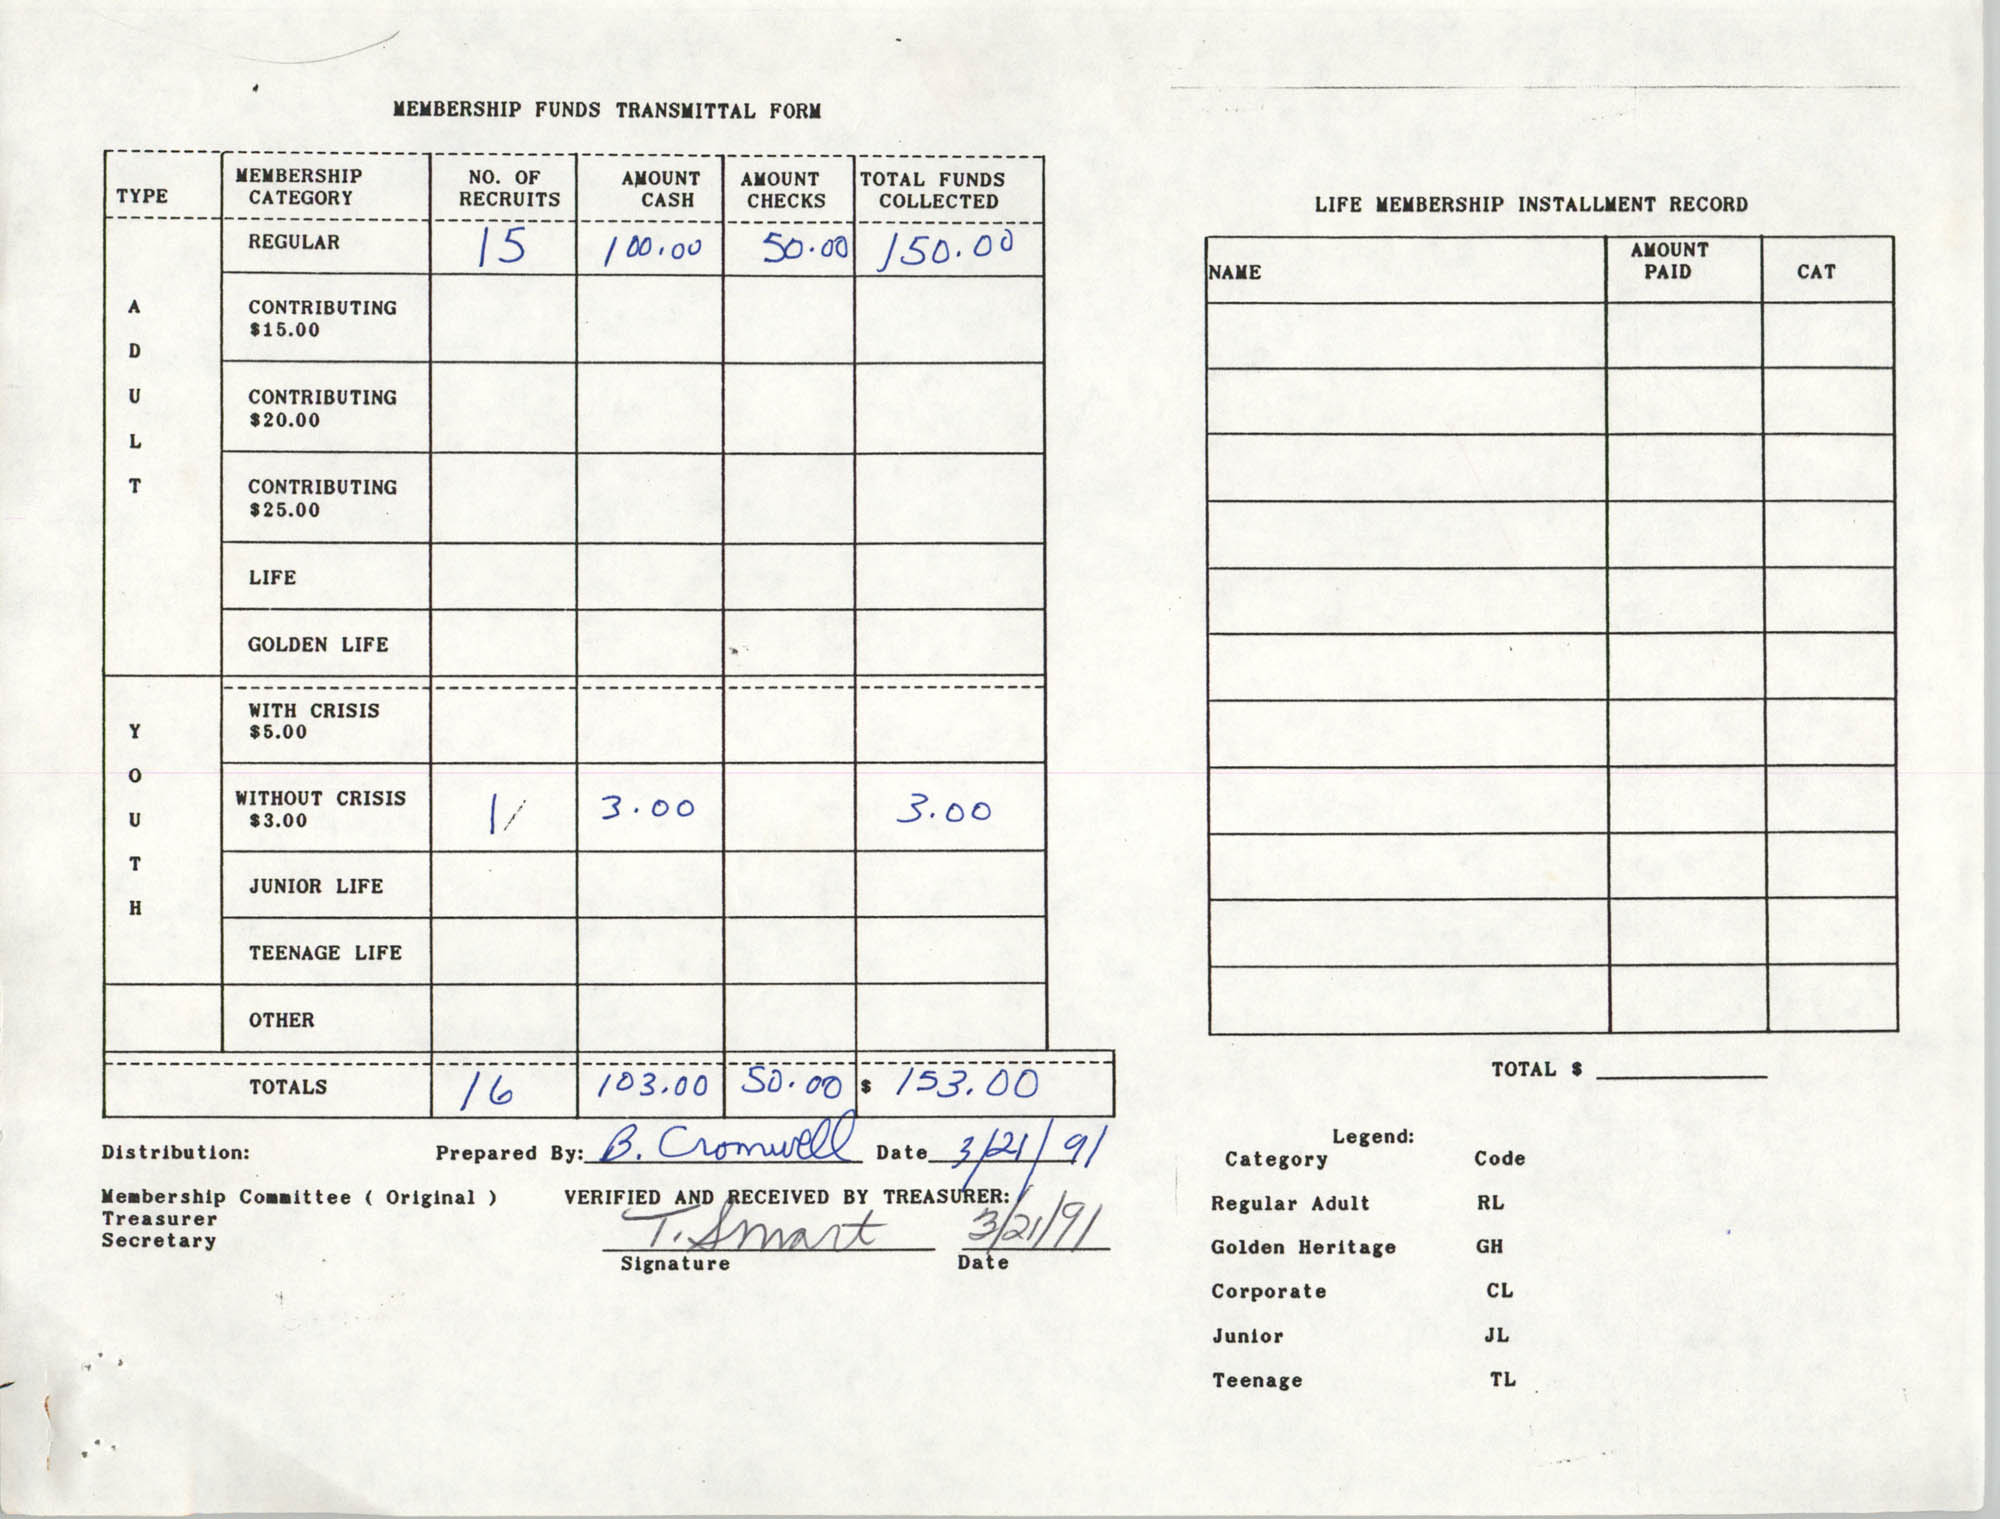 Charleston Branch of the NAACP Funds Transmittal Forms, March 1991, Page 11